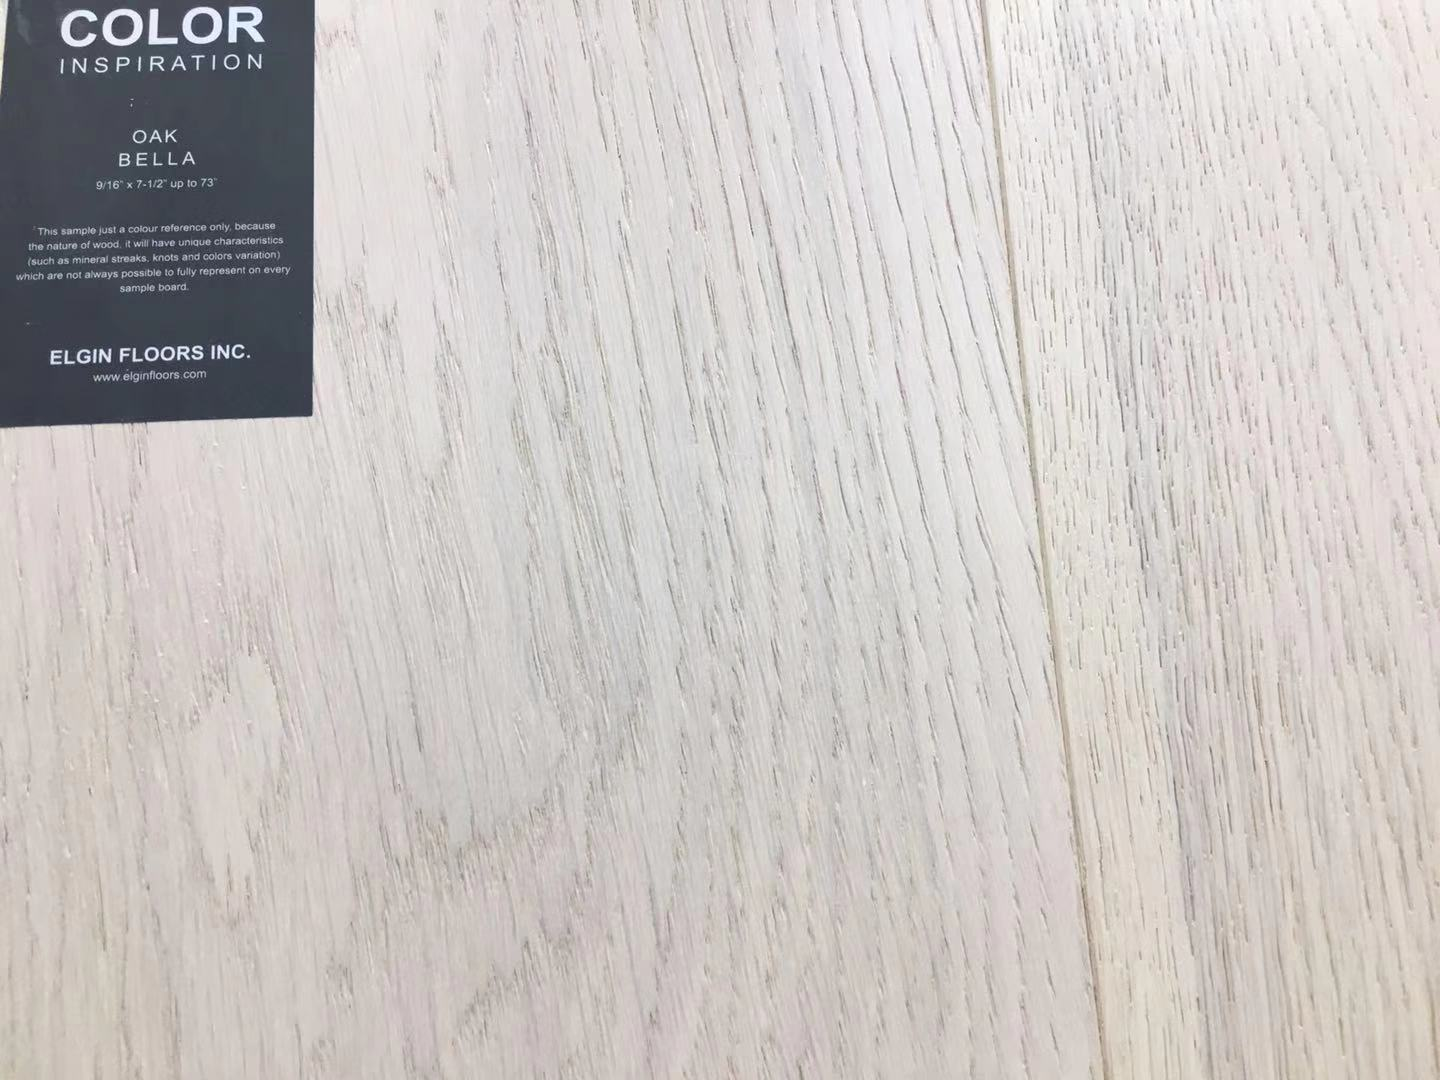 "SPX ORDER 1-2DAYS ENGINEERED HARDWOOD 7-1/2"" WIDTH 2MM TOP LAYER  OAK BELLA 23.33SF/BOX $4.26/SF $99.49/BOX# - Home Idol Home Improvement Outlet"